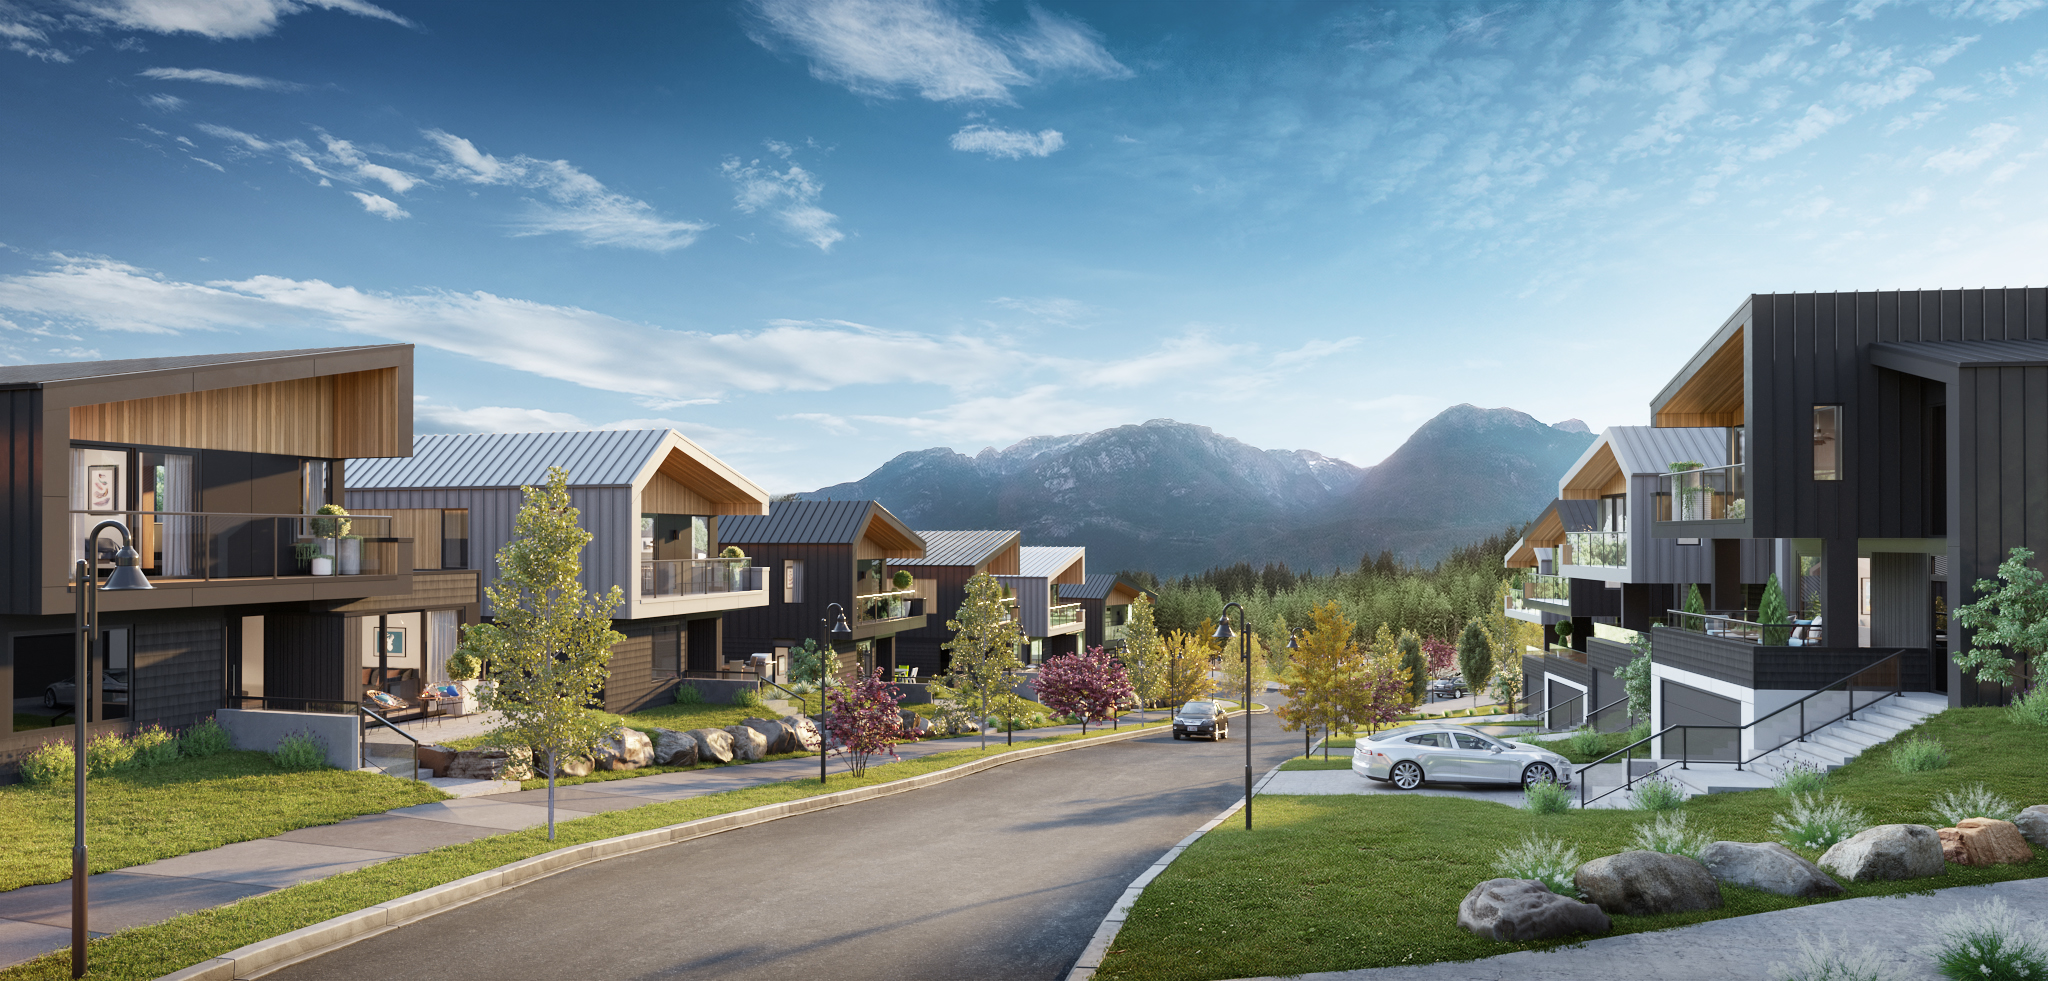 VANCOUVER DEVELOPER WINS INTERNATIONAL PROPERTY AWARDS FOR CUSTOM CONTEMPORARY HOMES IN SQUAMISH, BC.